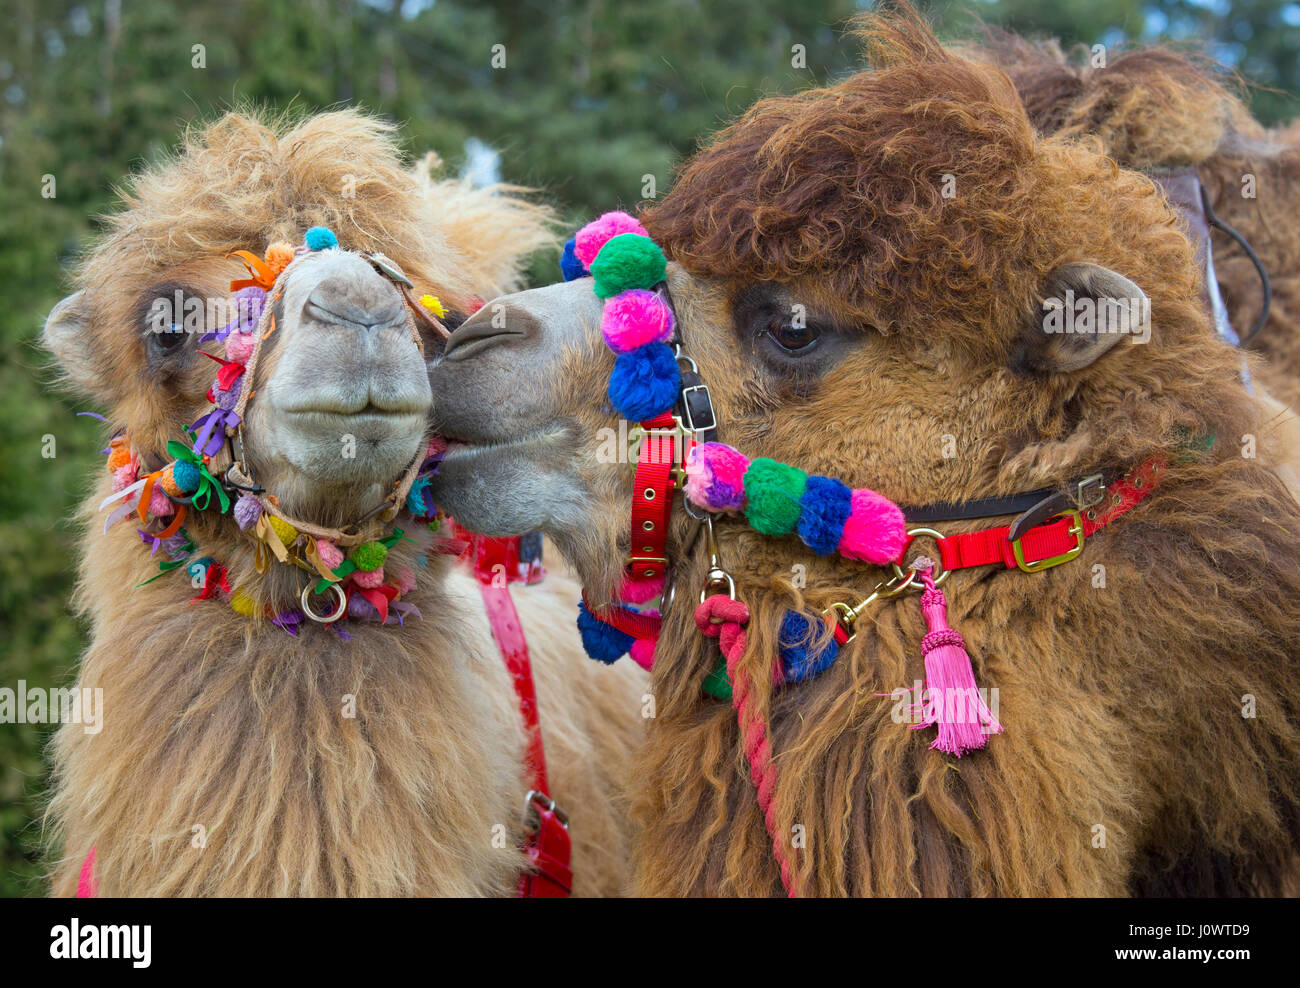 Domesticated Bactrian camels Camelus bactrianus used for camel racing - Stock Image